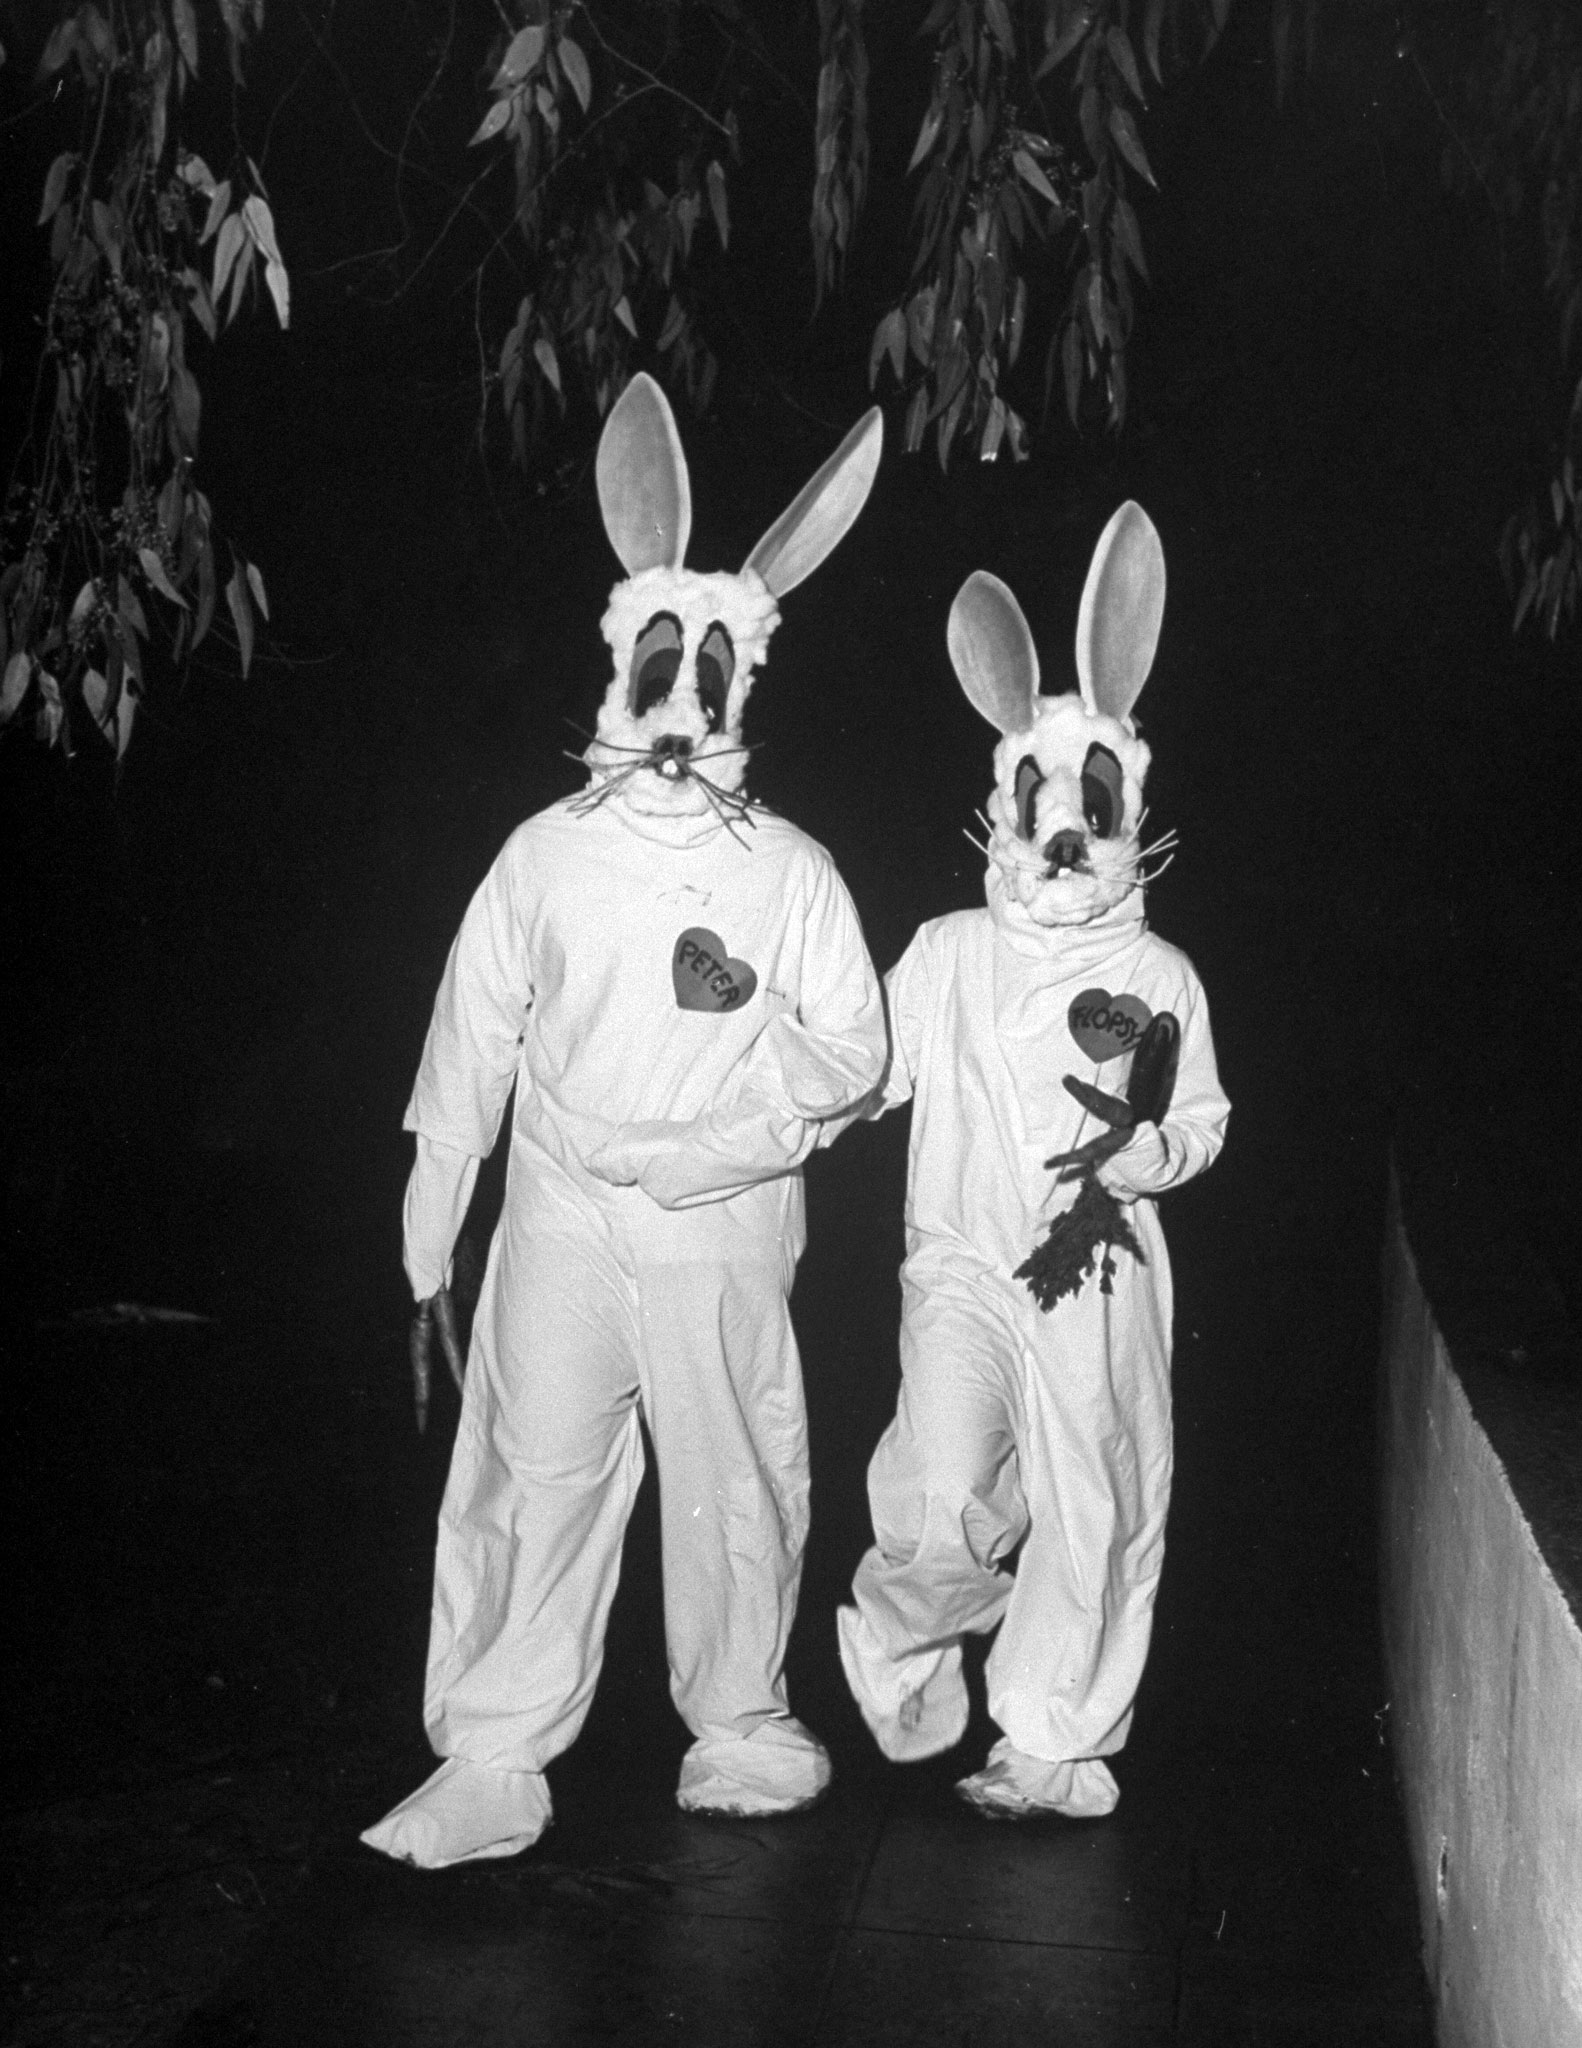 <b>Caption from LIFE.</b> Make-believe rabbits, Bud Jones and Muriel Goodwin in ordinary campus life, made the most startling and effective appearance at the masquerade party. The costumes were sewn together by Miss. Goodwin from old bed sheeting of dark felt and cotton batting for less than a dollar. The entire party cost a little under $400.